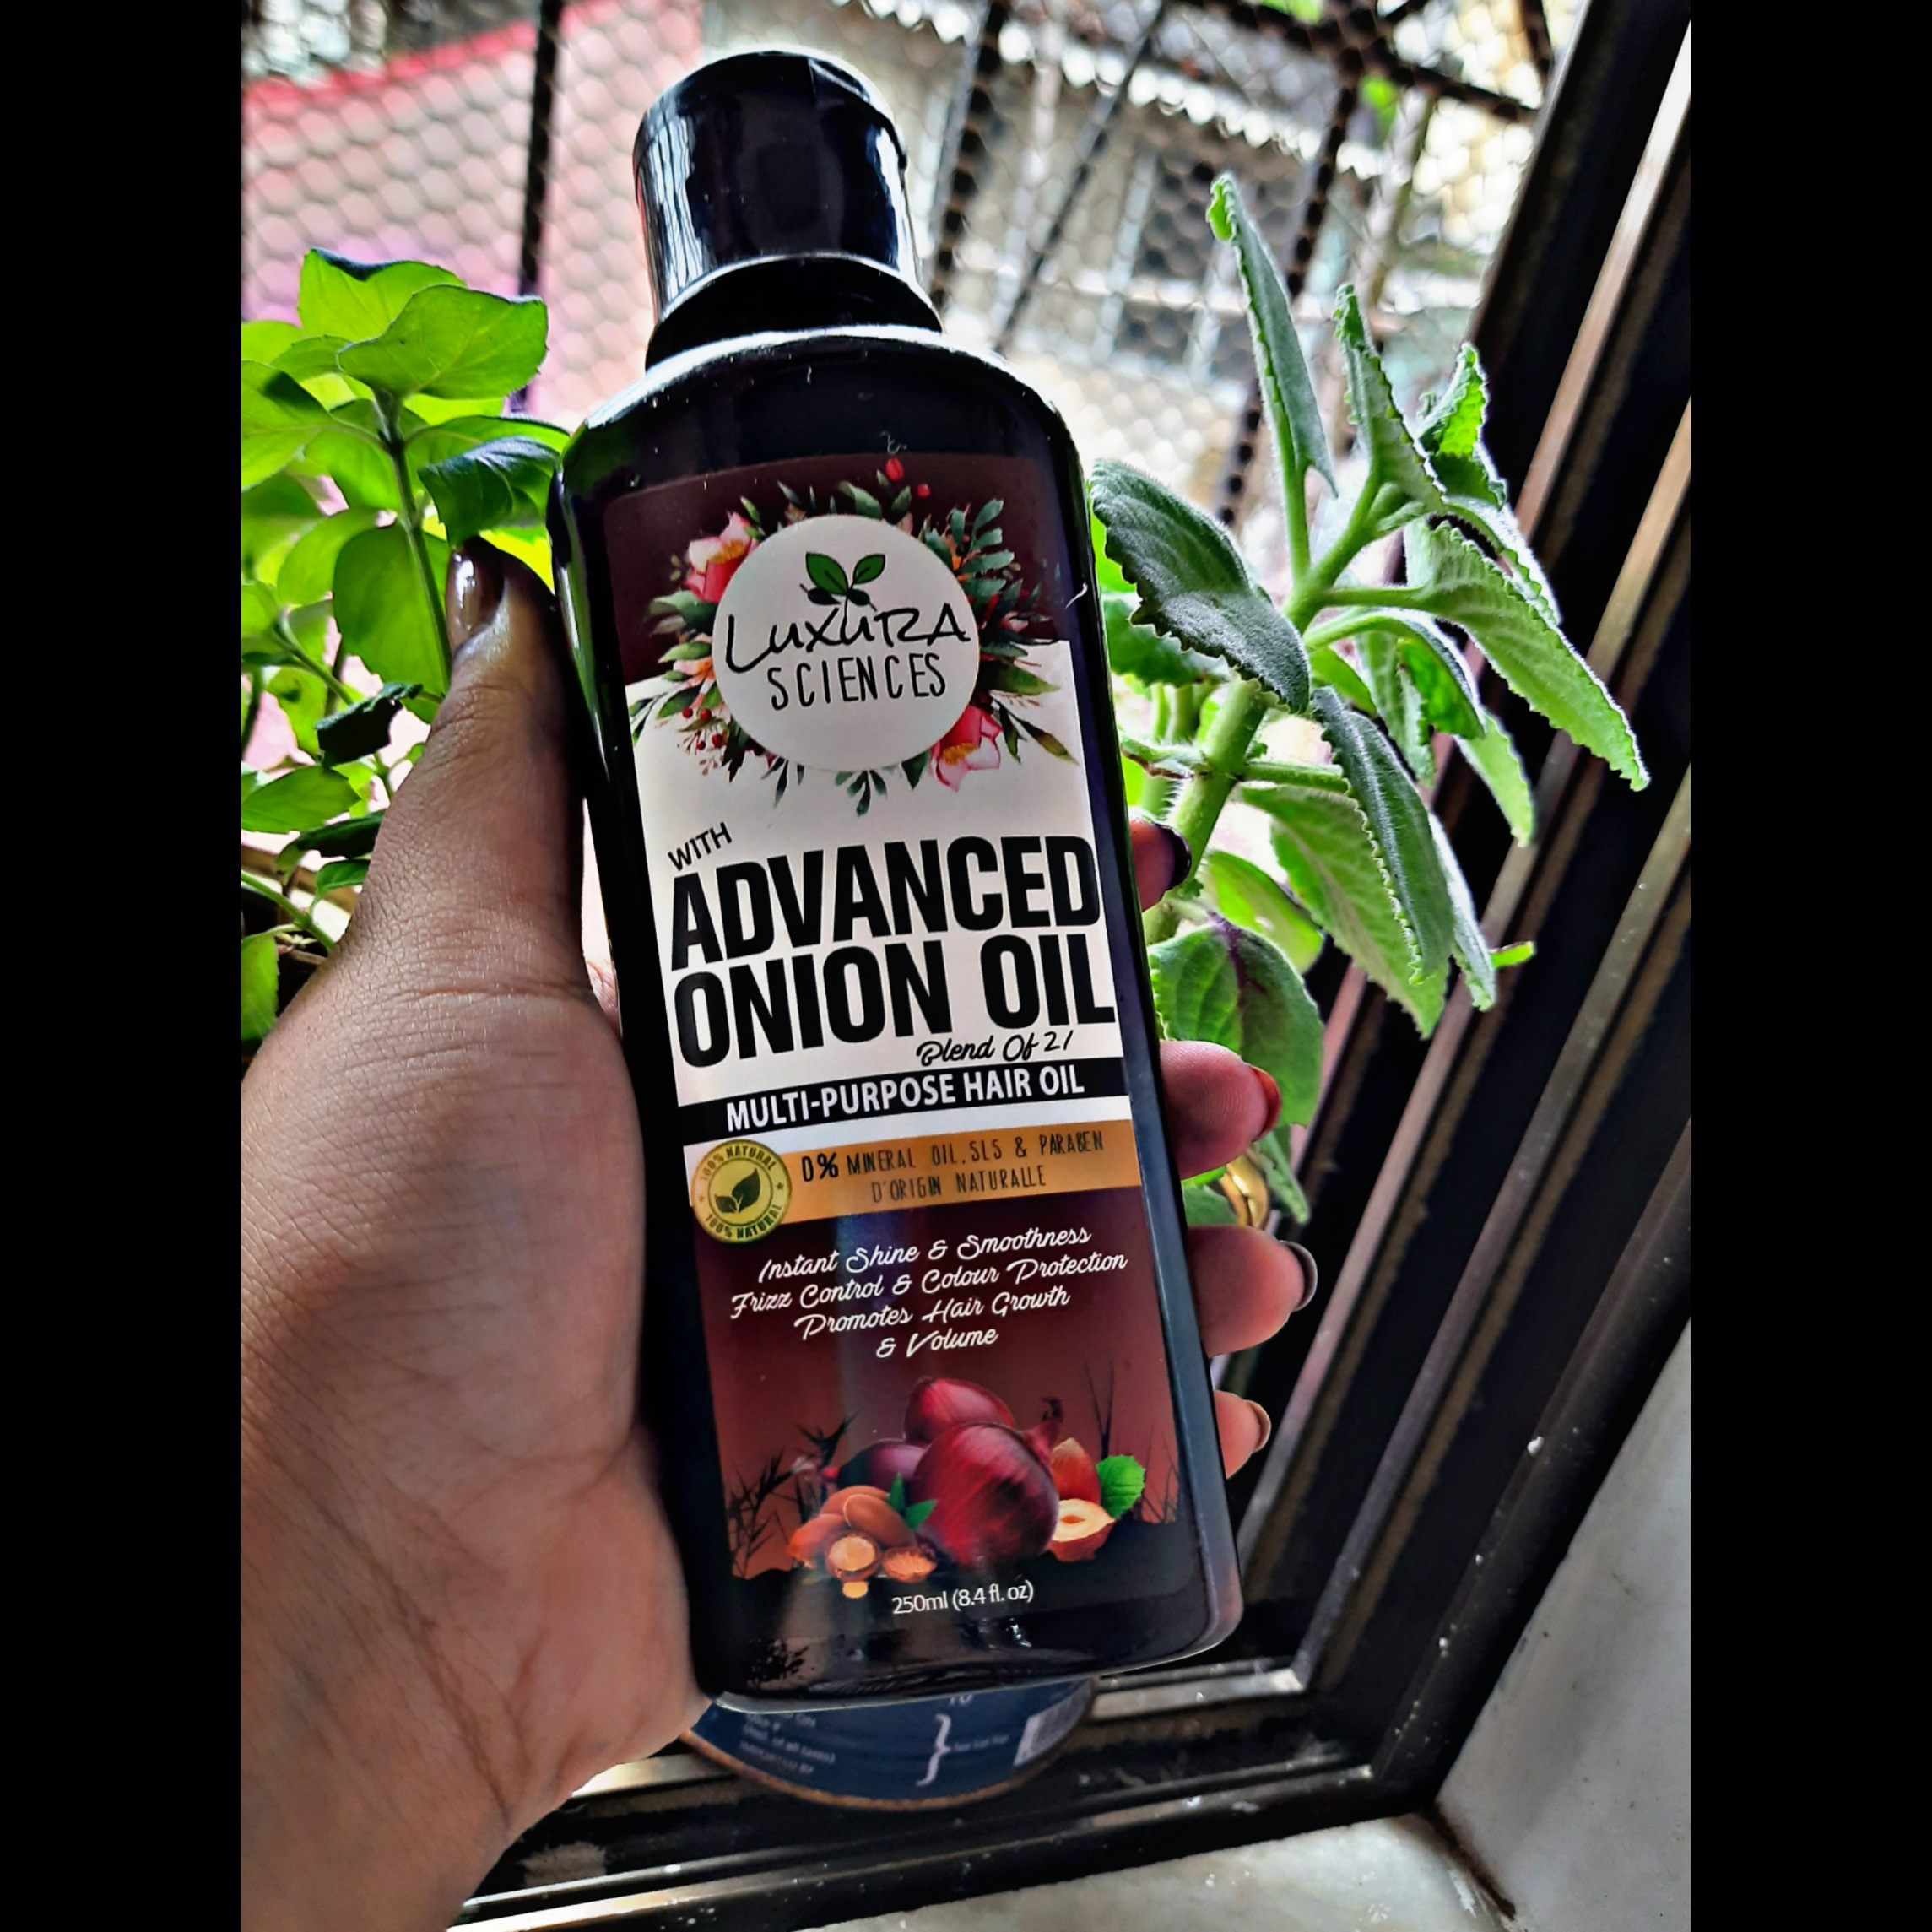 Luxura Sciences Advanced Onion Oil 250 ml-Loved it-By zalak